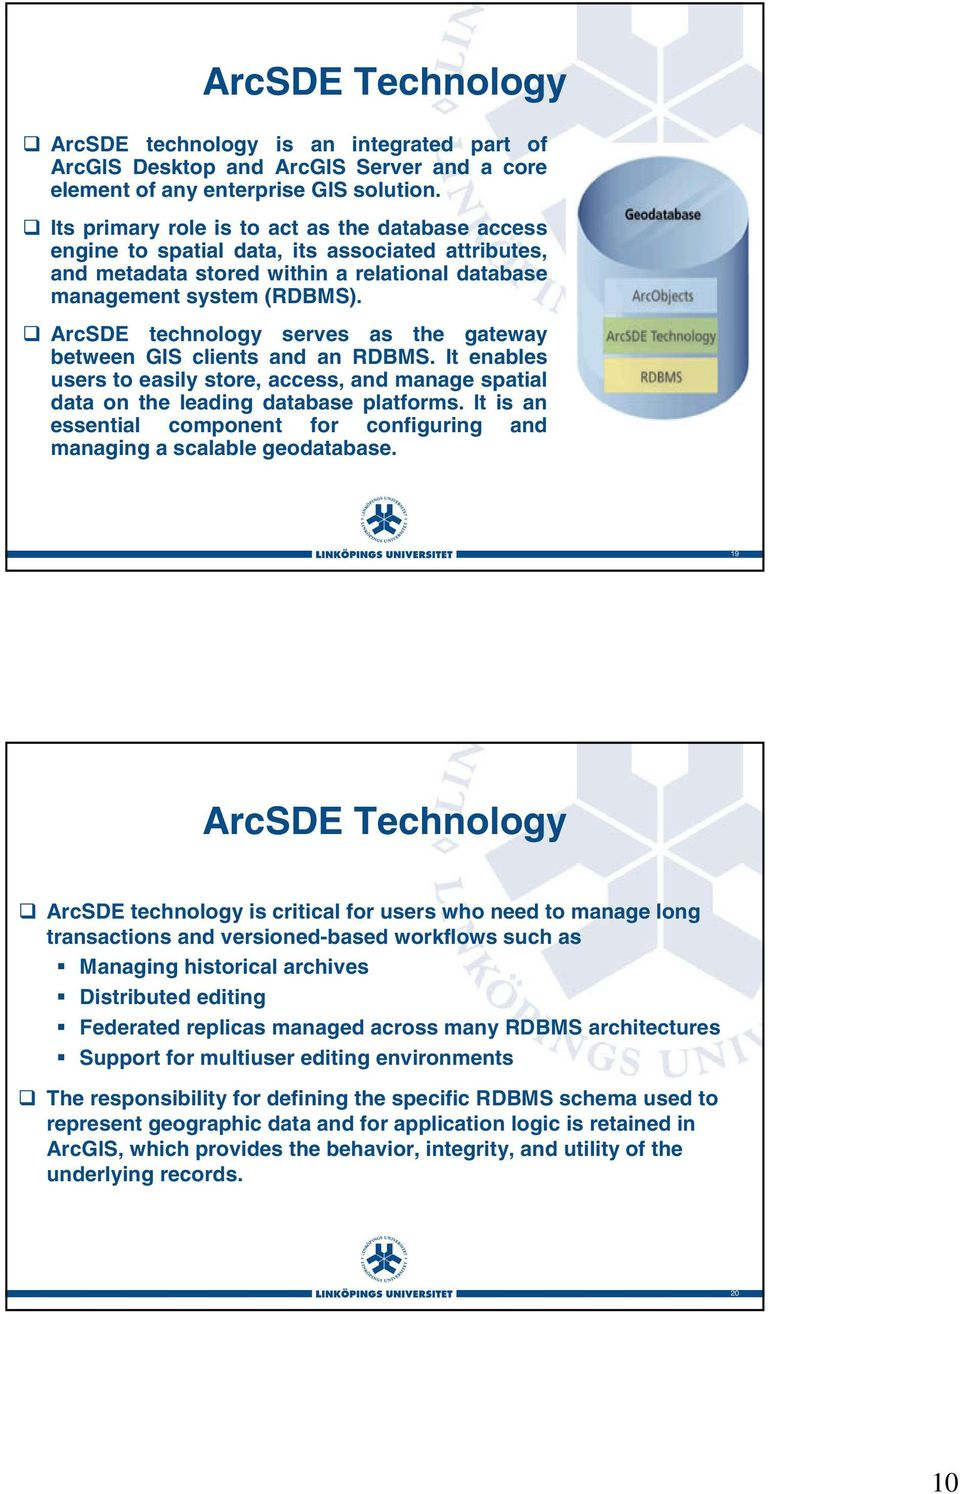 ArcSDE technology serves as the gateway between GIS clients and an RDBMS. It enables users to easily store, access, and manage spatial data on the leading database platforms.